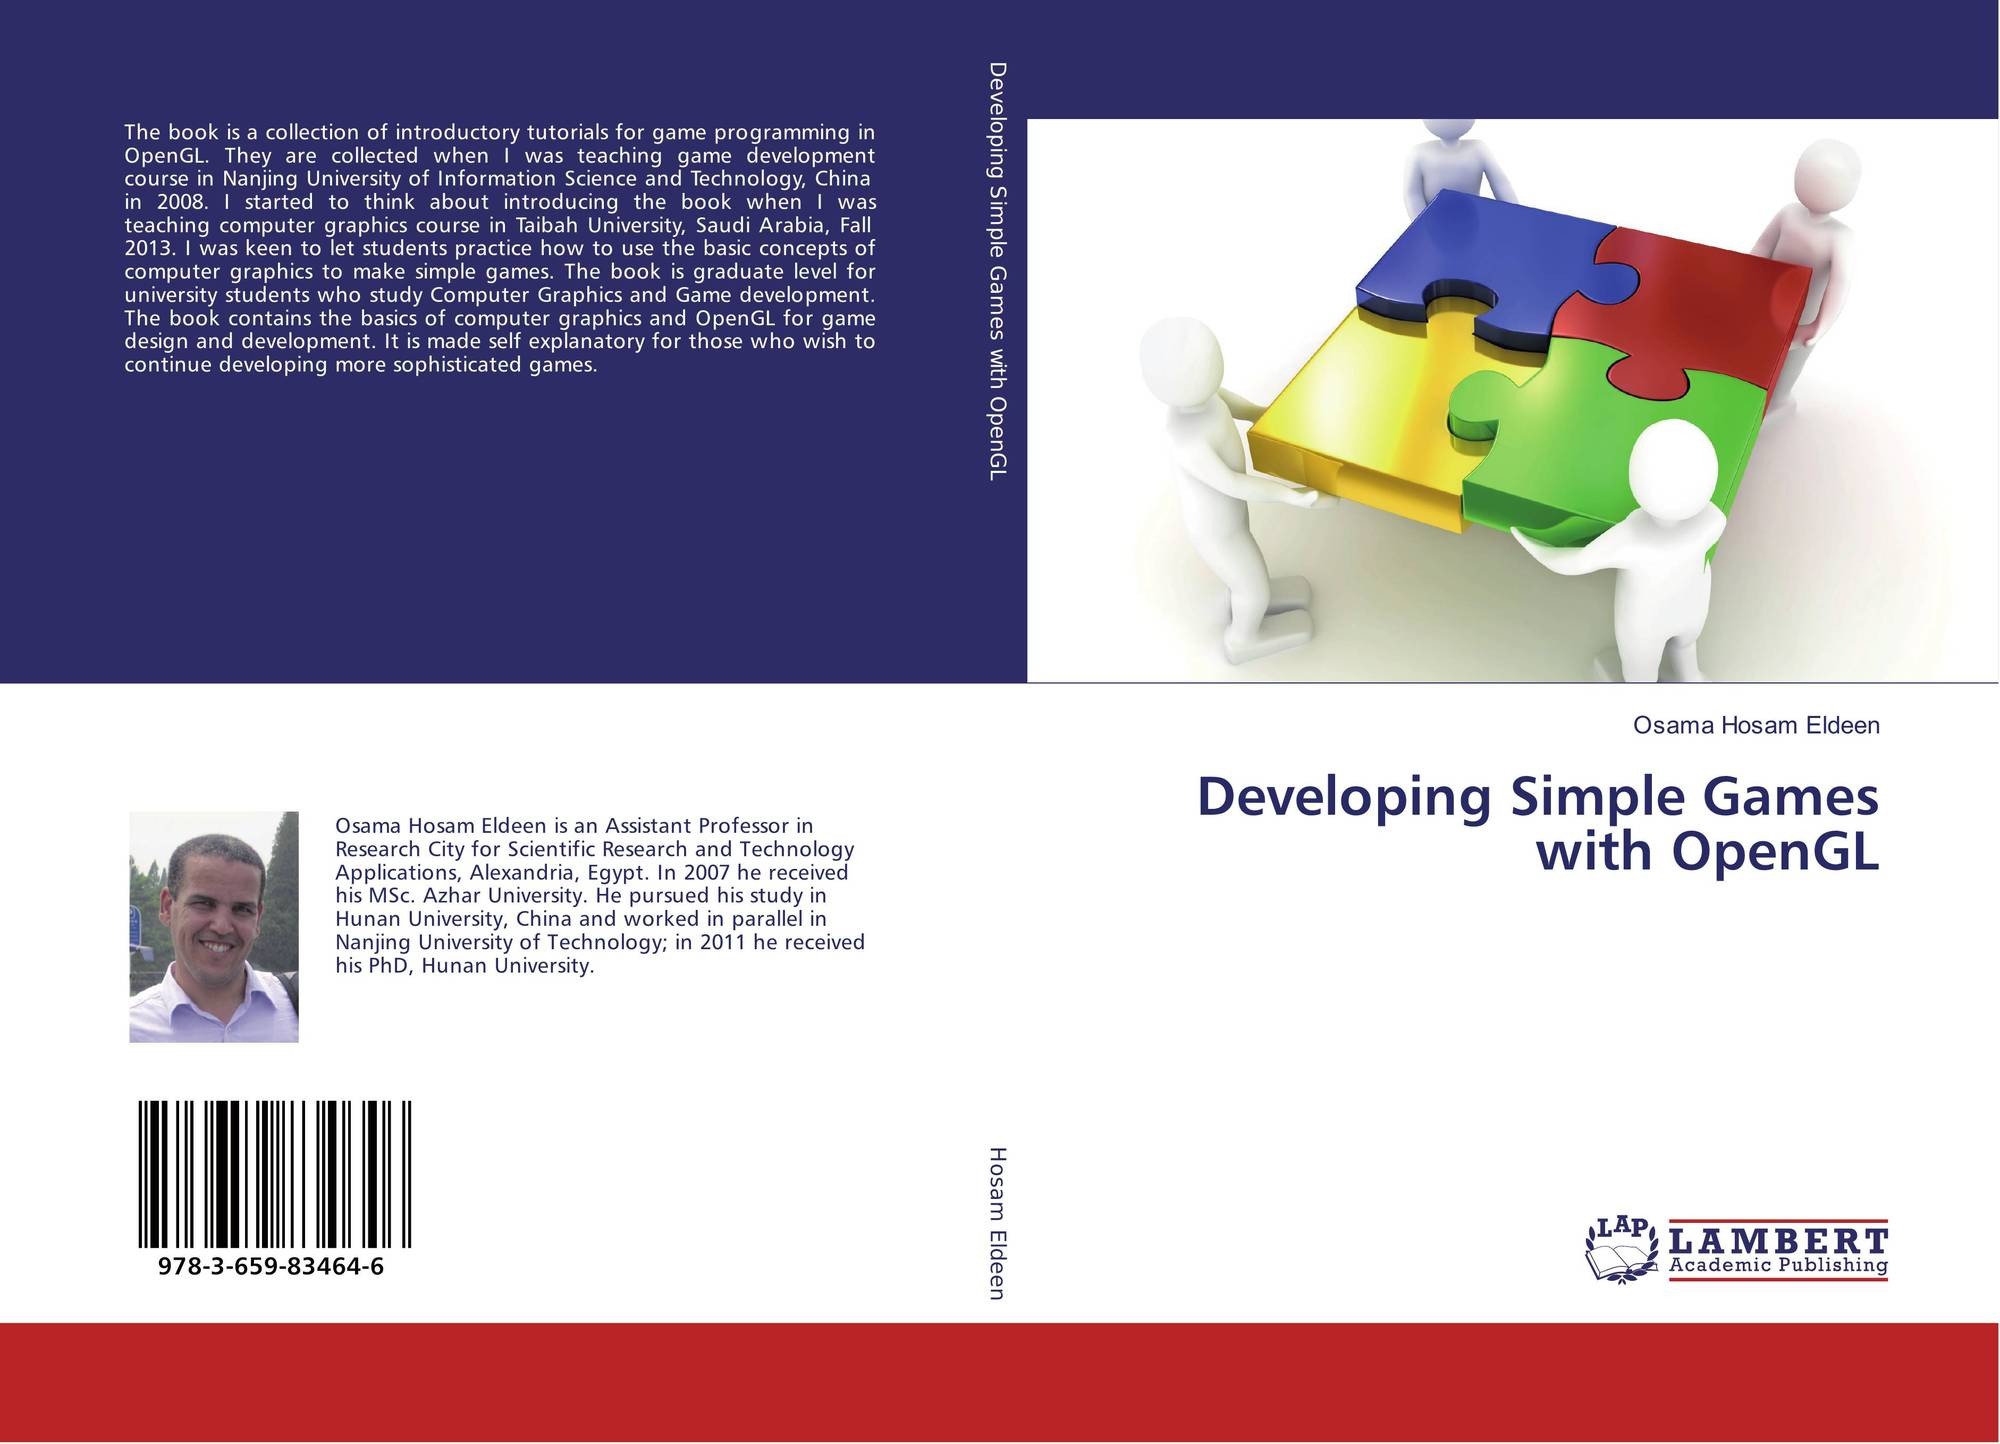 Developing Simple Games with OpenGL, 978-3-659-83464-6, 3659834645